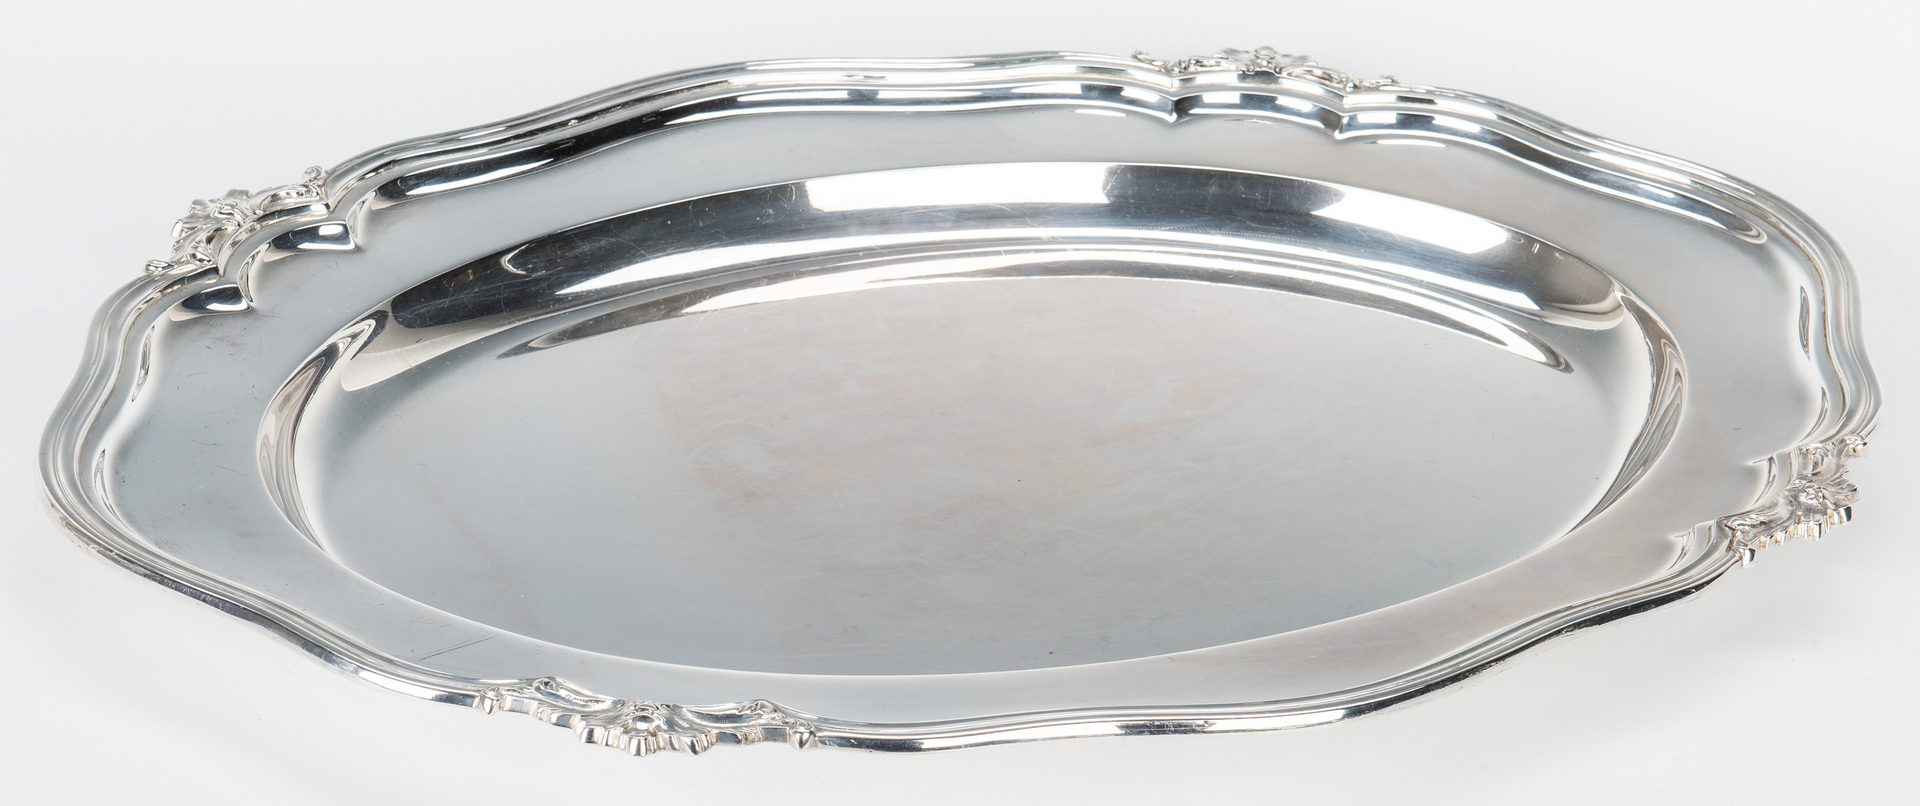 Lot 454: Industria Argentina Oval Sterling Silver Tray